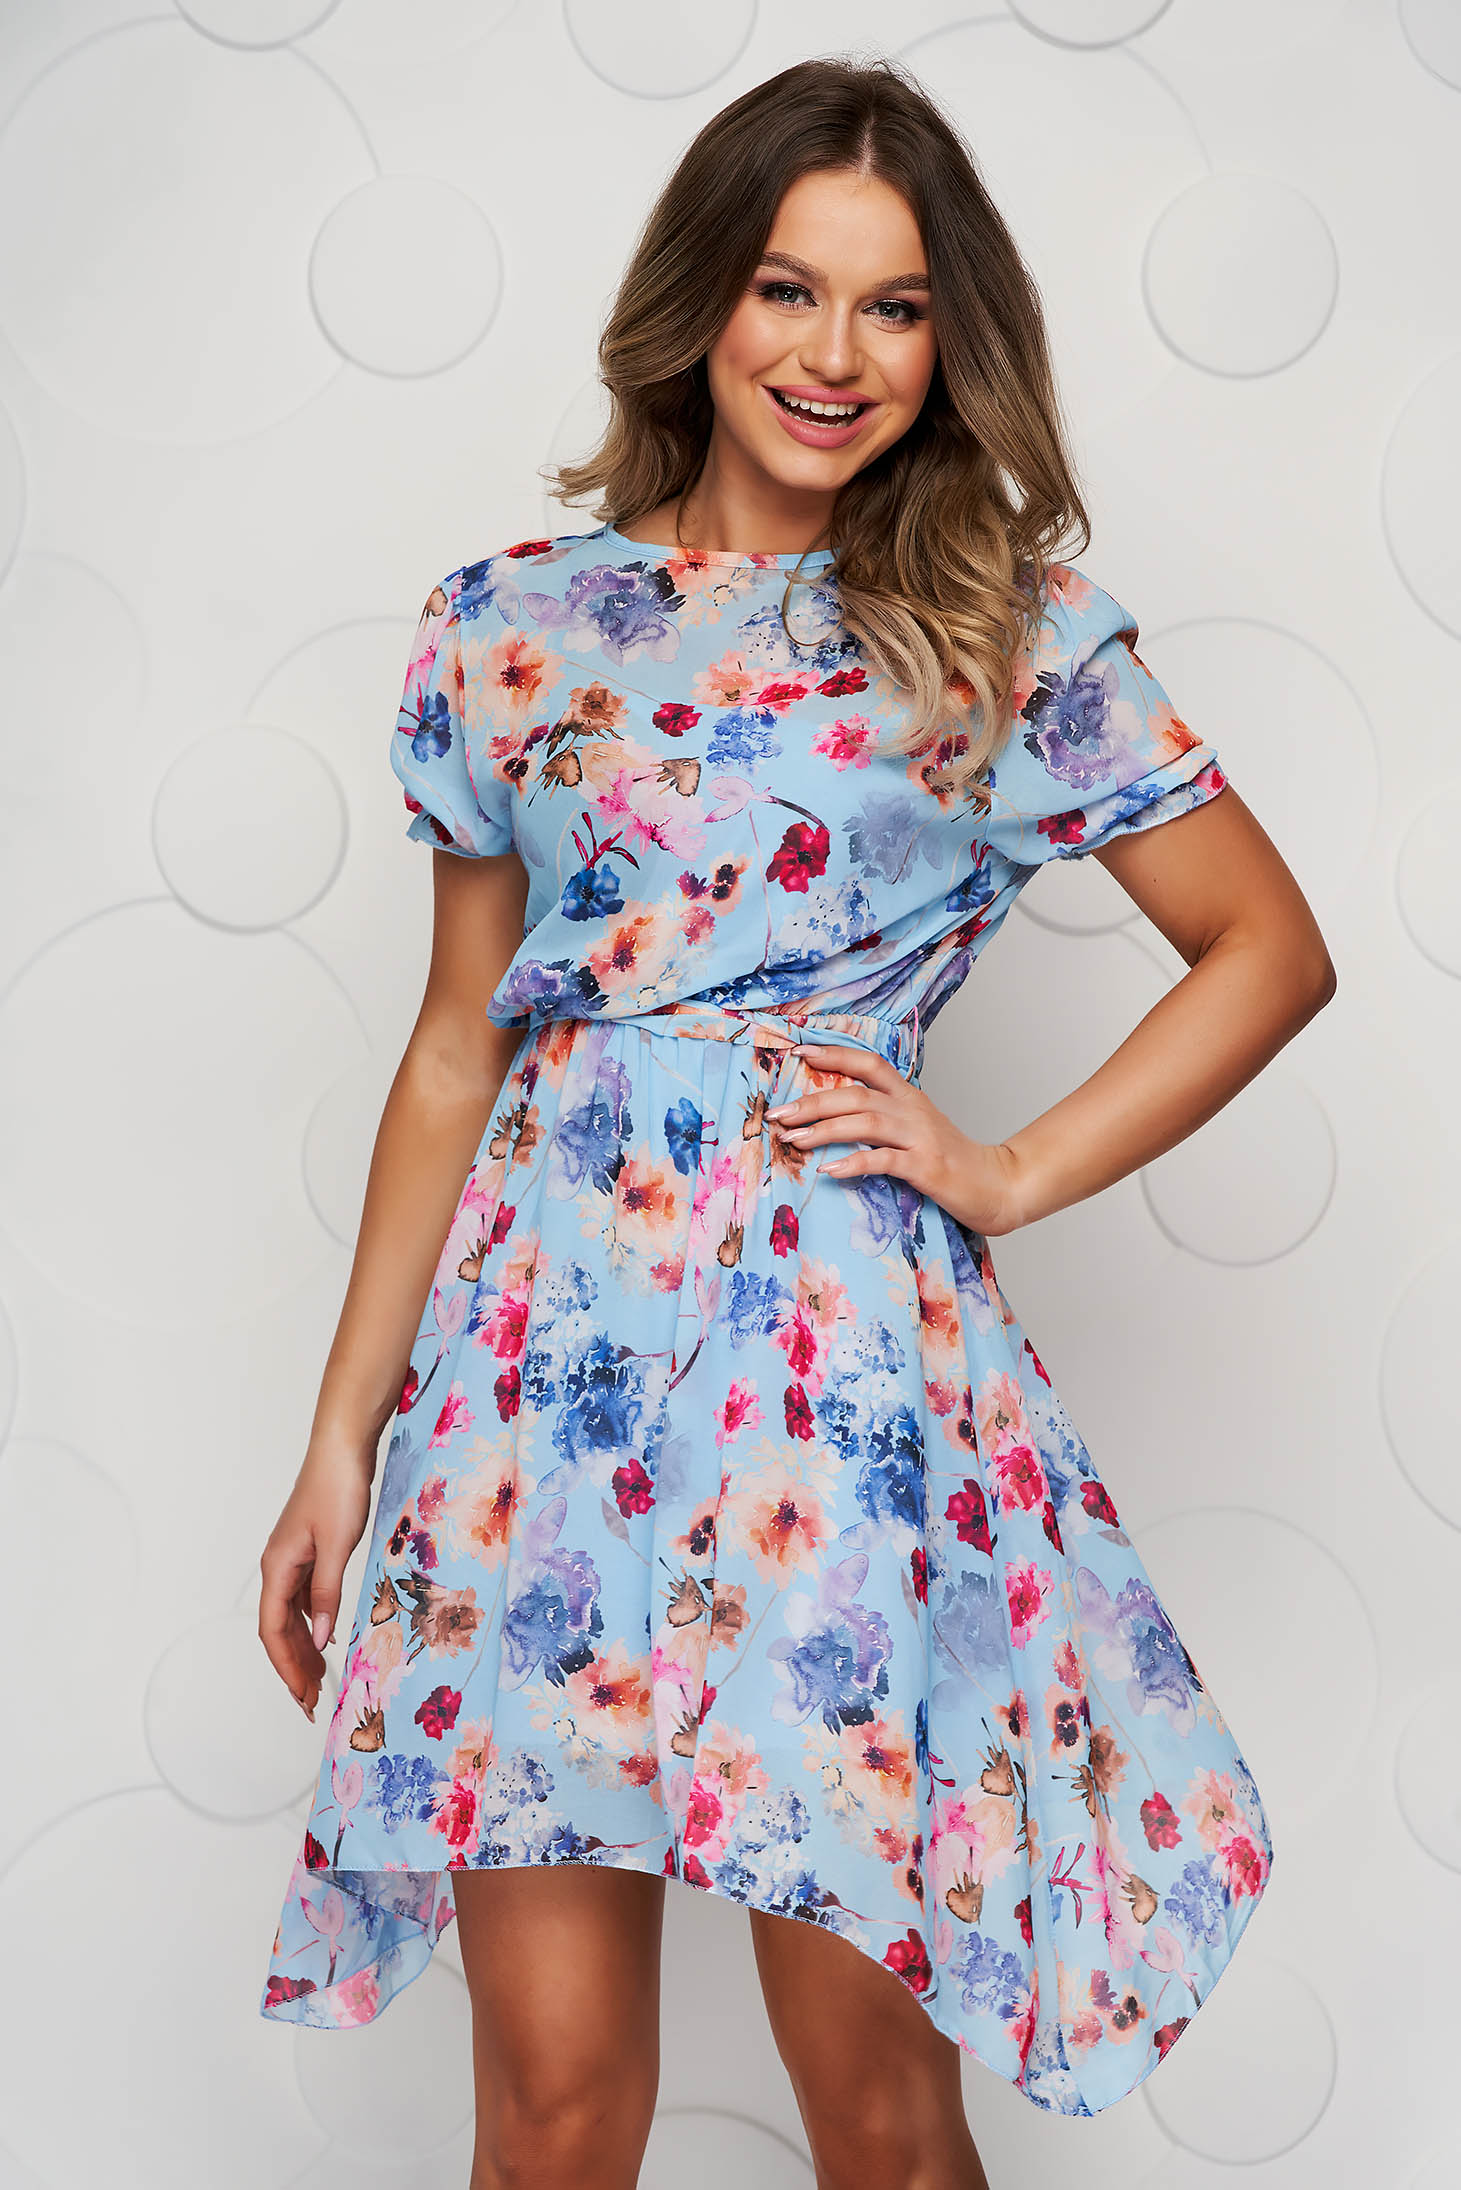 Blue dress asymmetrical cloche with elastic waist with floral print accessorized with tied waistband